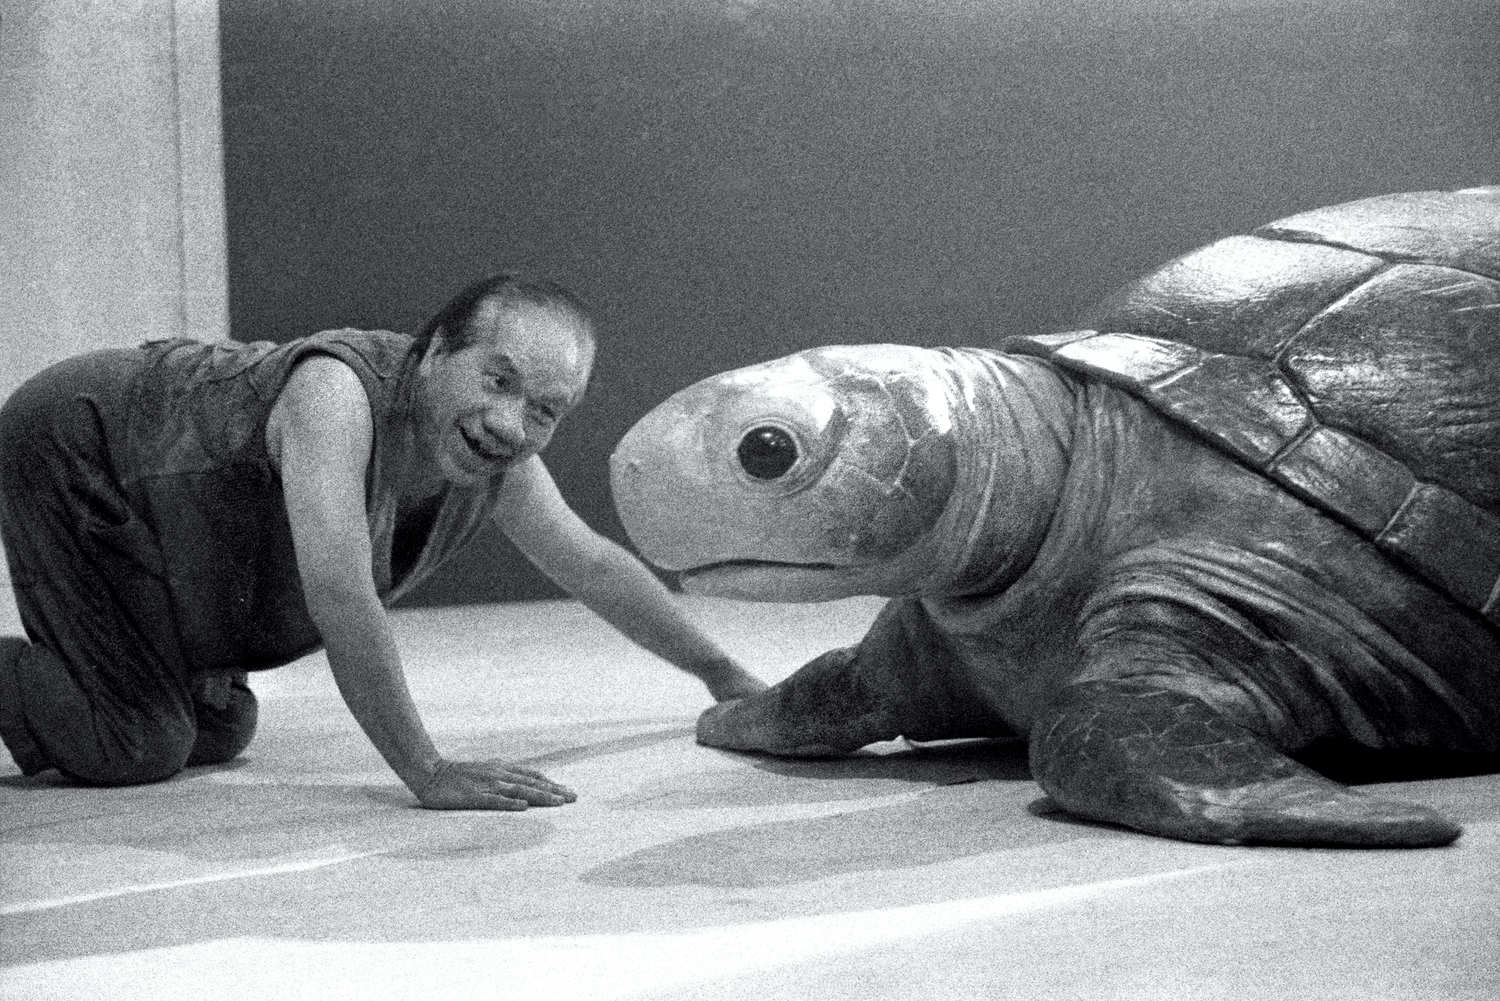 Miss Tanaka Handspan/Playbox production - man crawls towards large lifelike turtle puppet